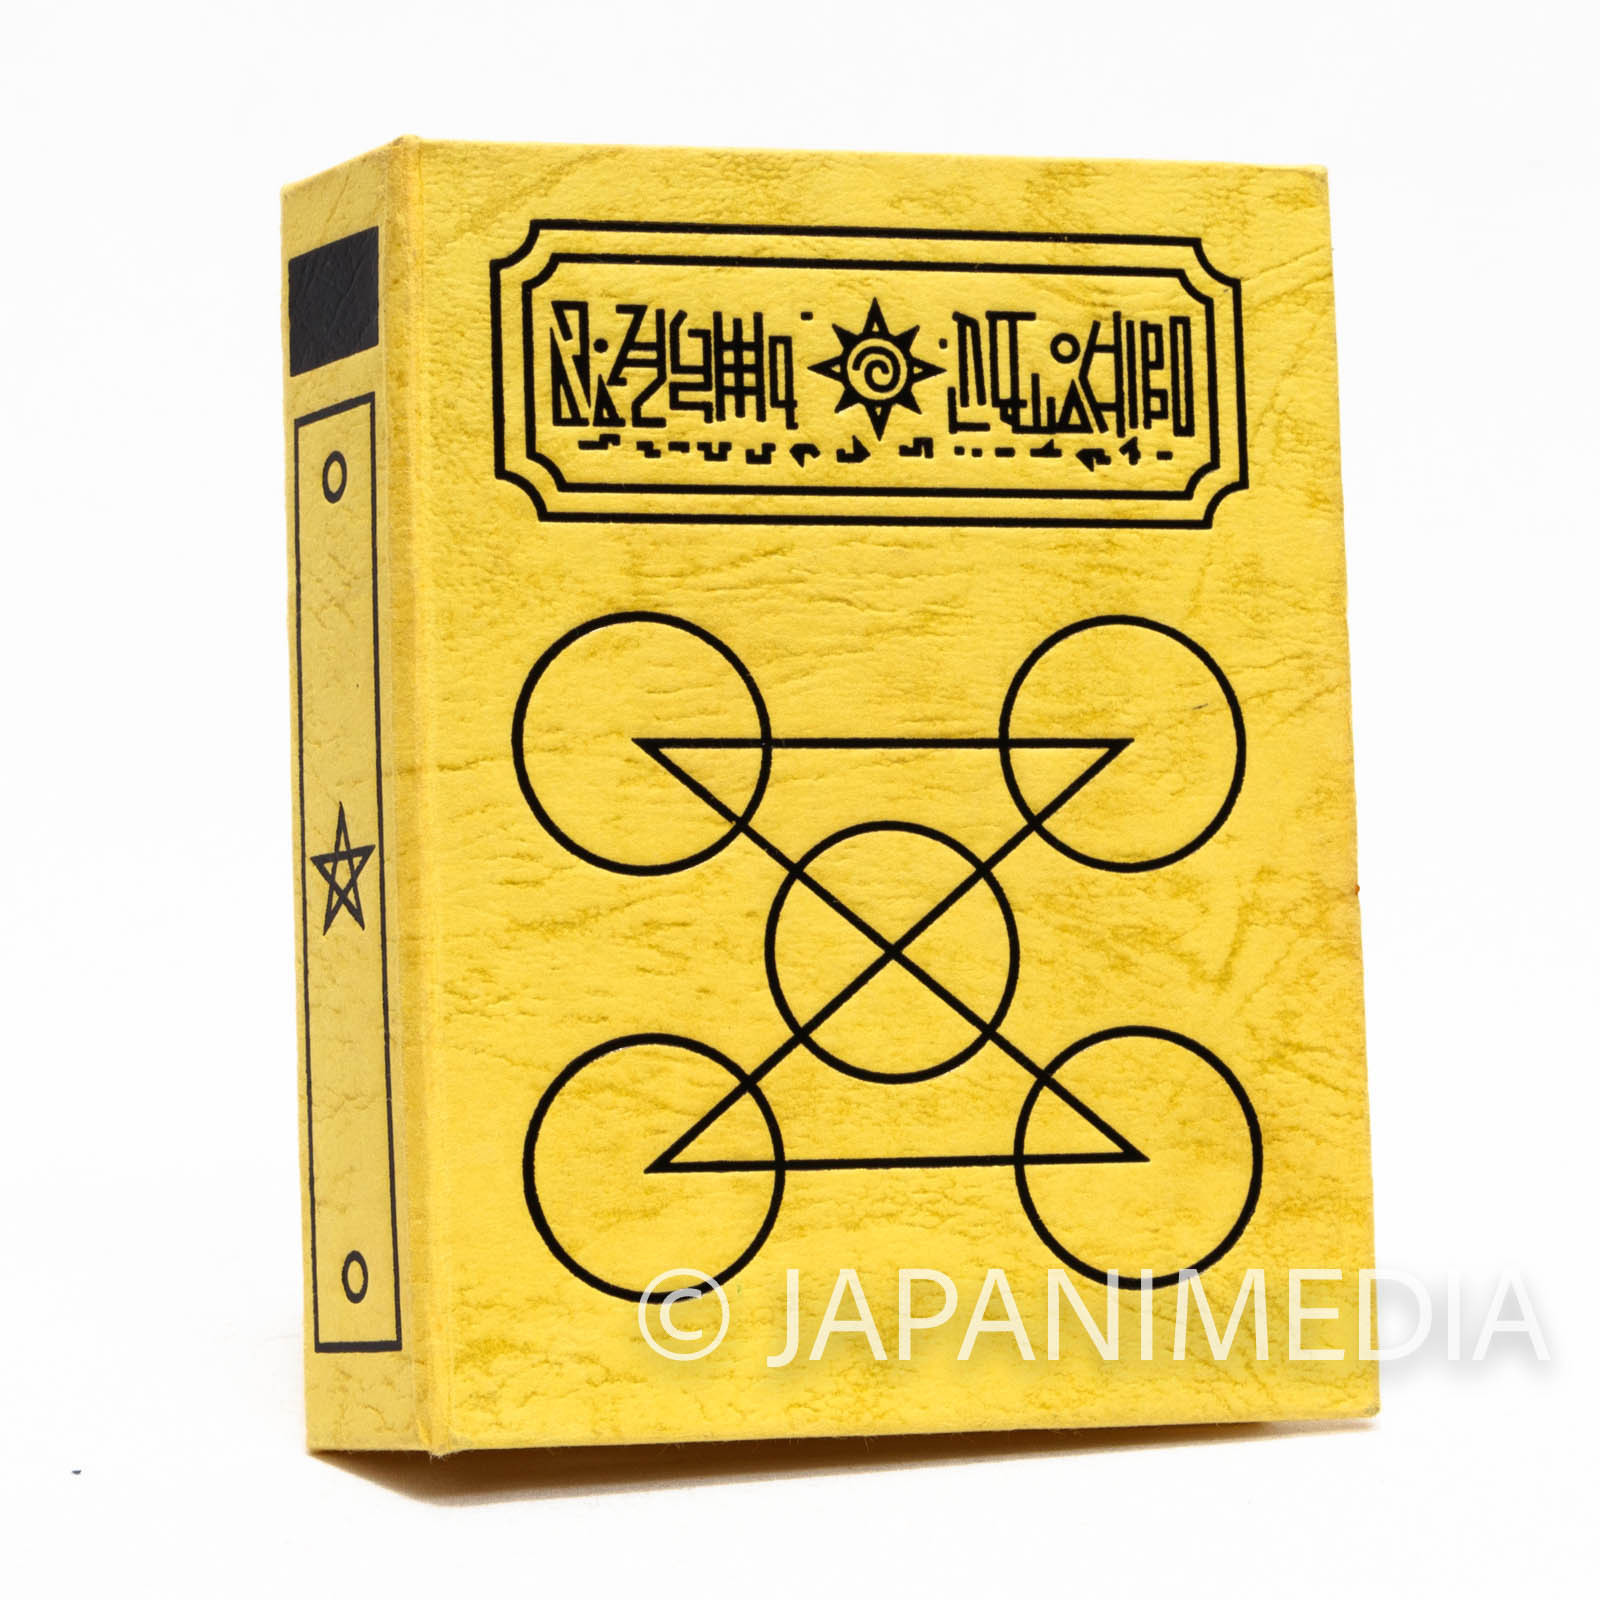 Zatch Bell! Spell Book The Card Battle Card case (Kanchome ver.  Yellow) JAPAN ANIME